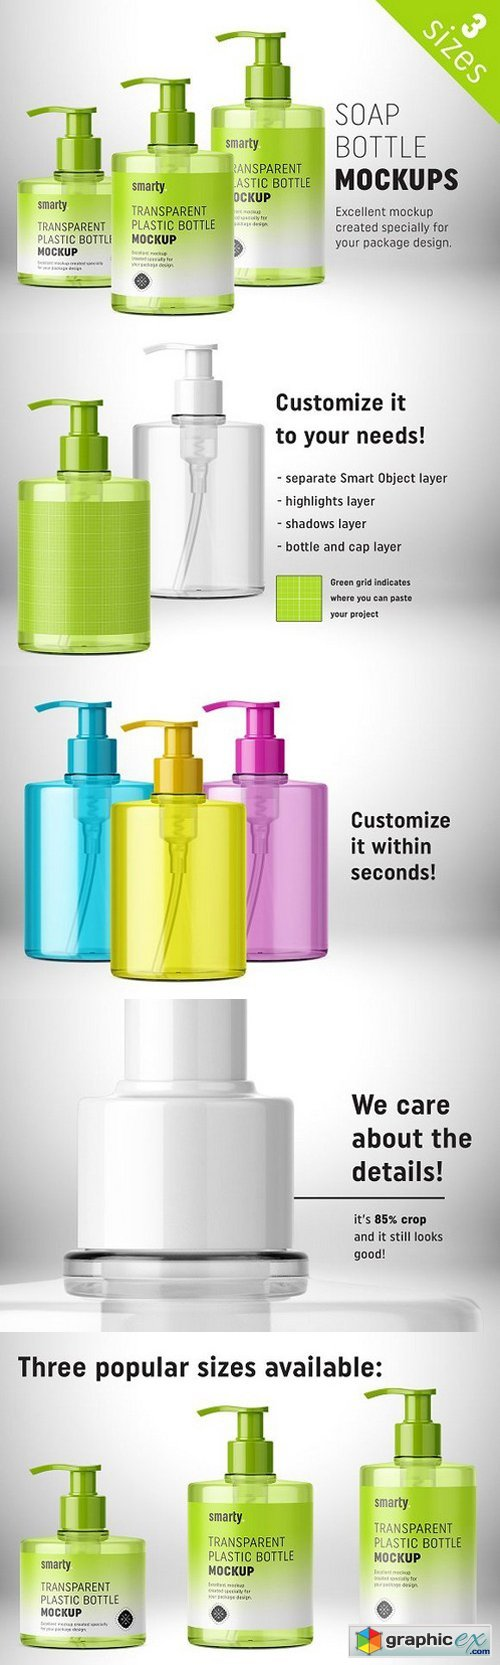 Soap Bottle Mockups 1782630